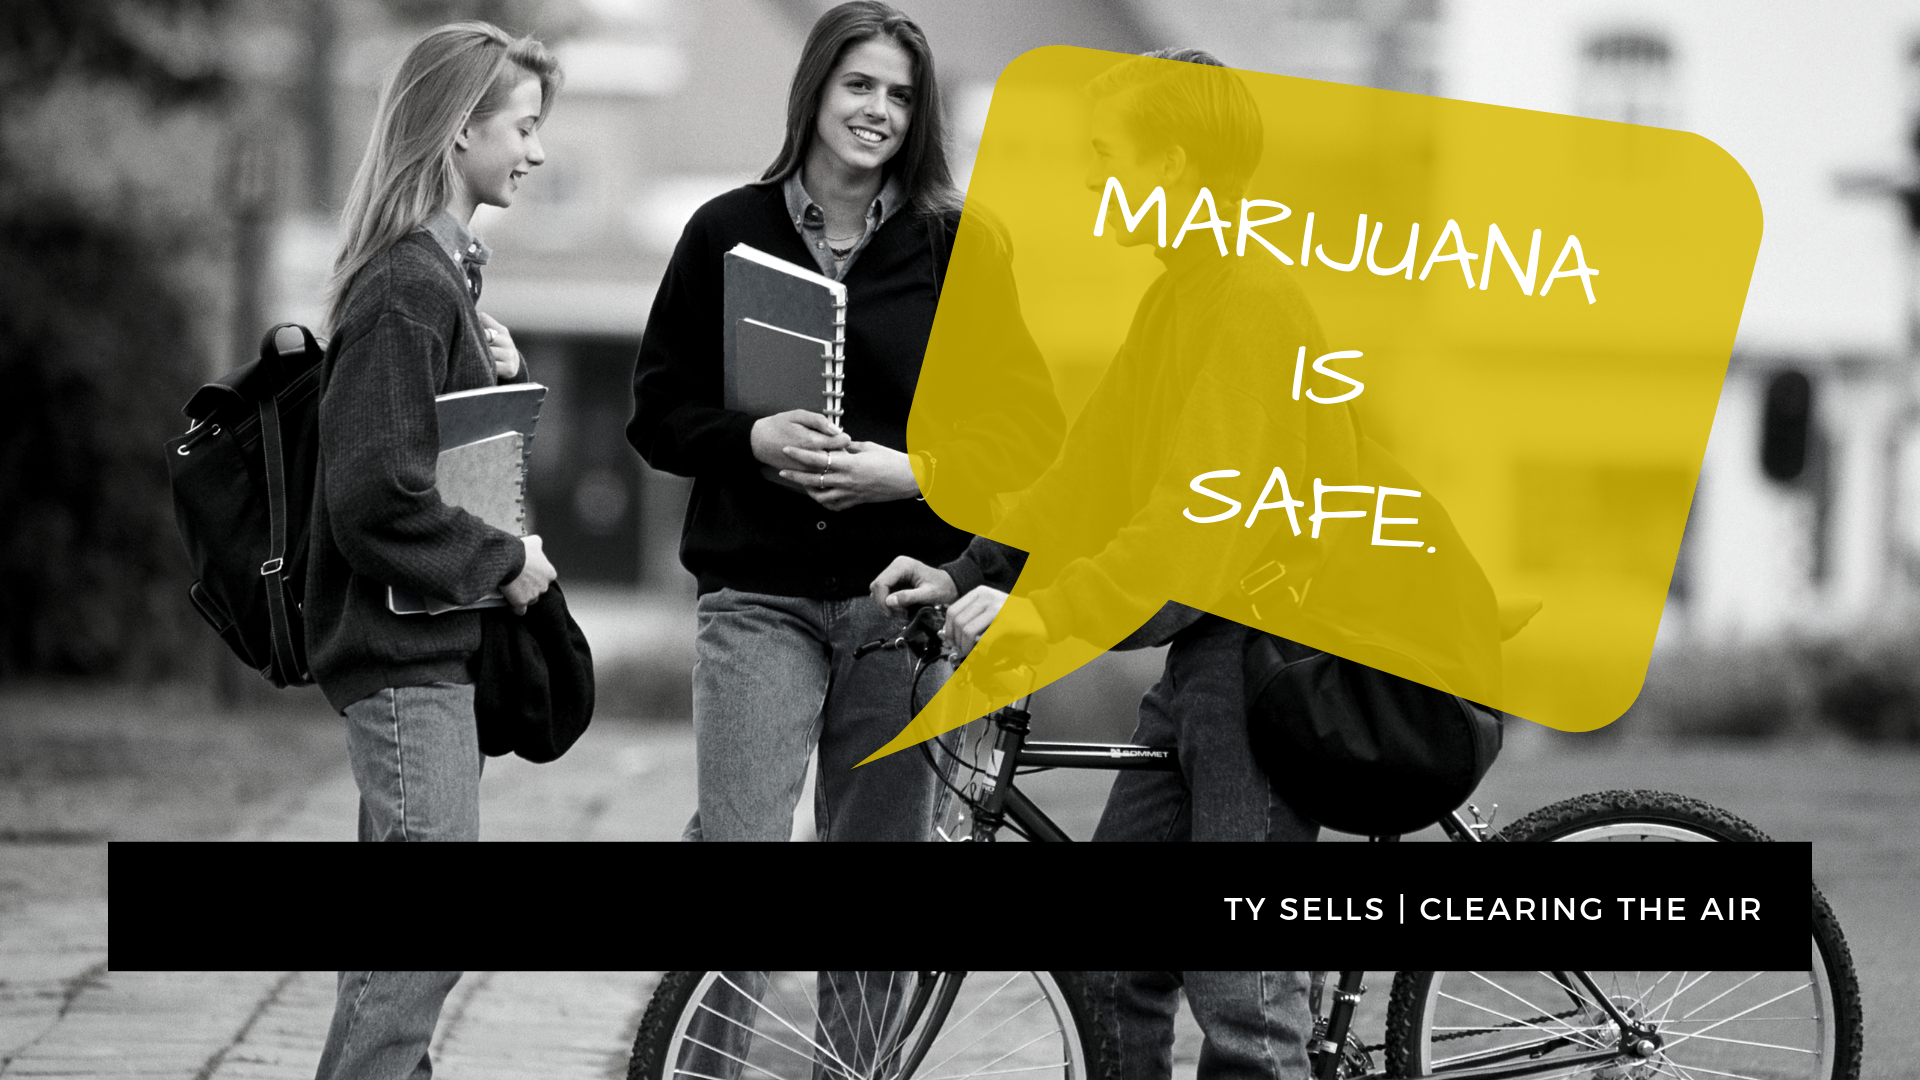 Teens are consistently being sold the message that Marijuana is safe.